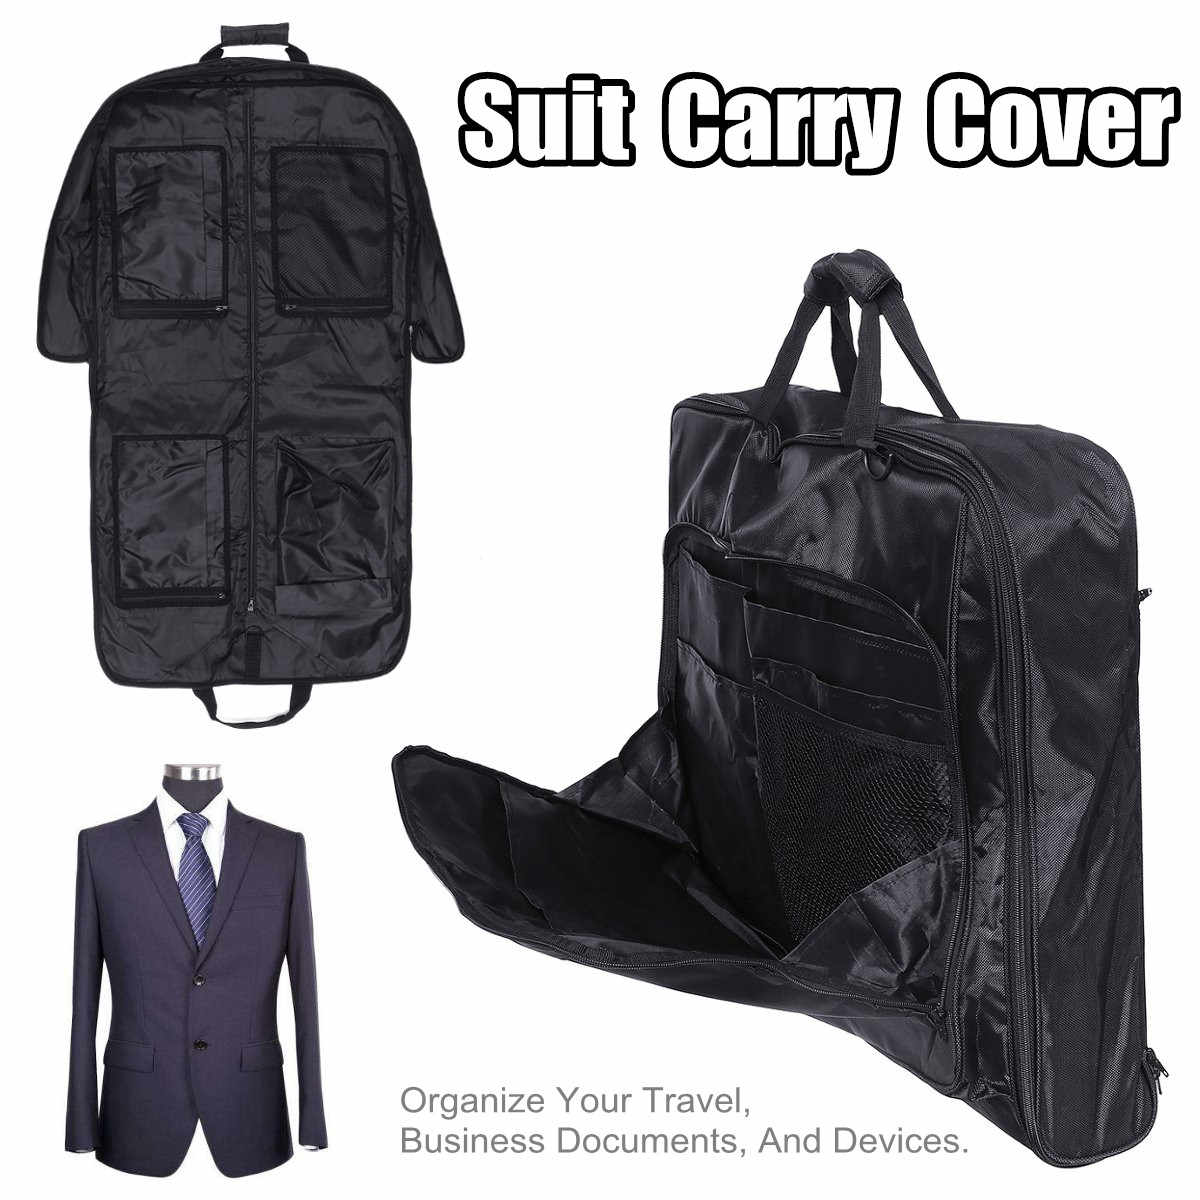 Multifunction Waterproof Dust-proof Dress Clothes Cover Case Suit Dress Garment Storage Bag Travel Business Bag Suit Carry Cover